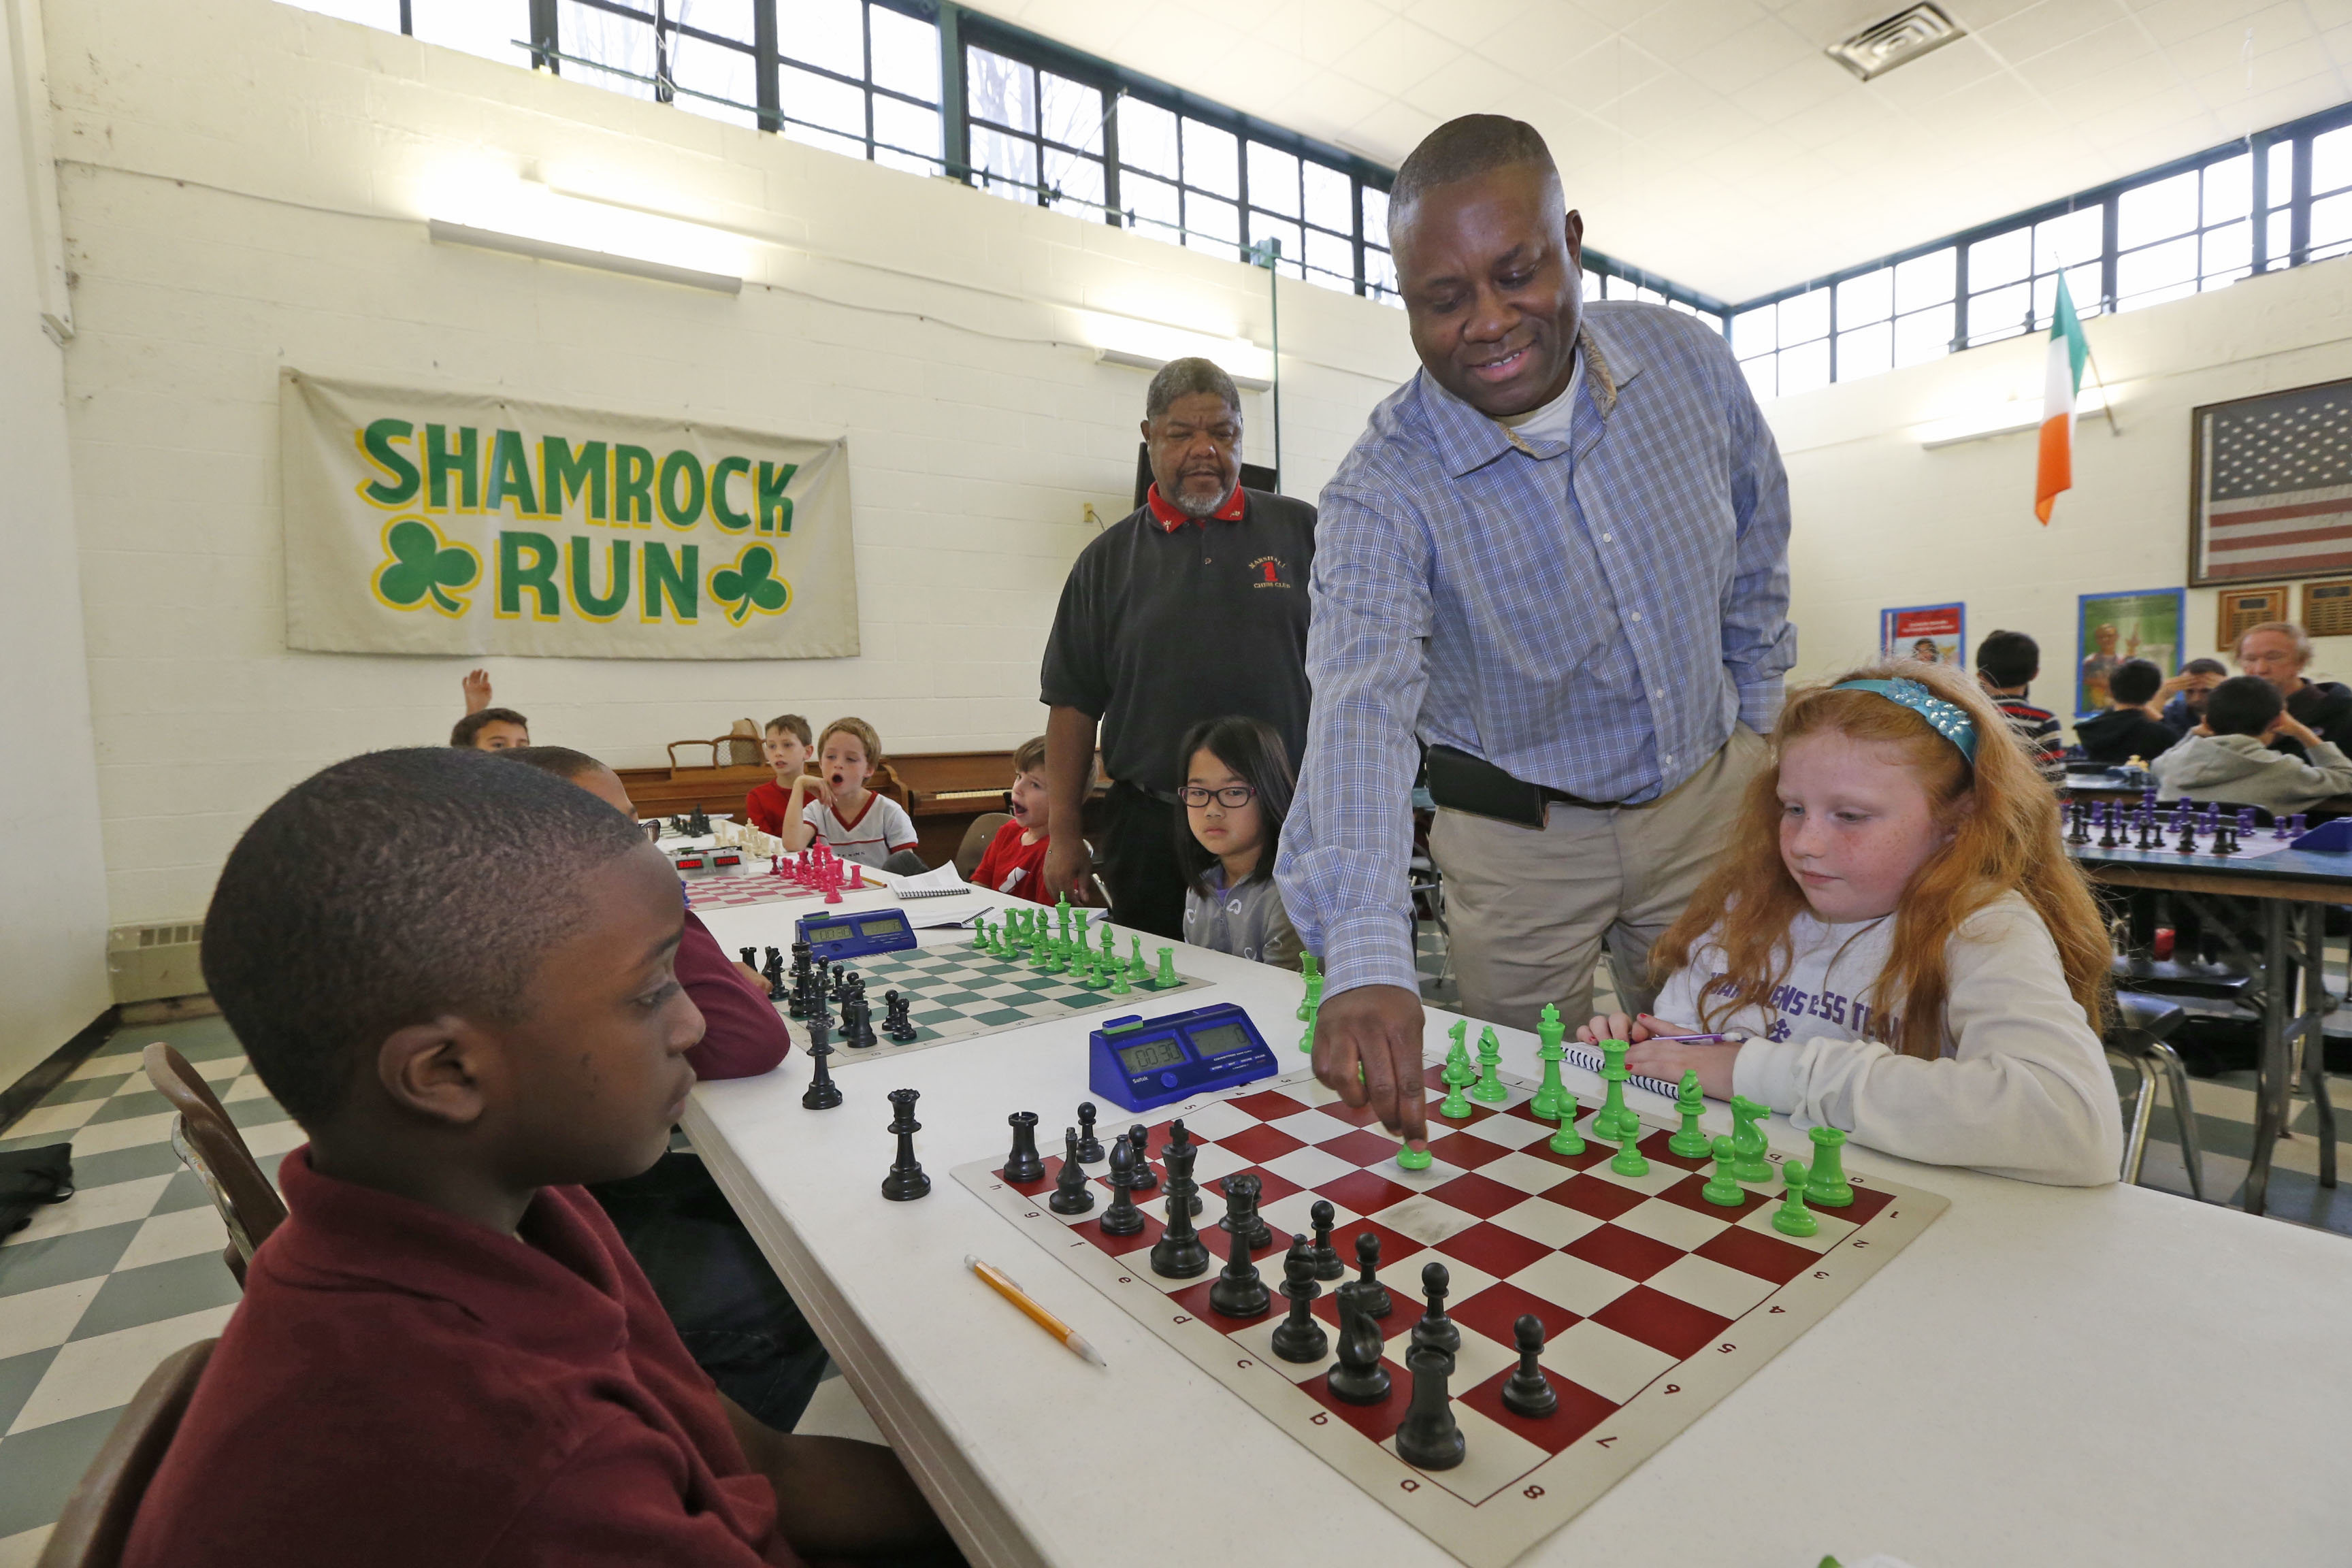 First-ever cup champion and author Eddie Mack moves one of Sami Woods' pieces, right, who was playing Jimmir Darby, takes the ceremonial first-move at the Mayor's Cup Chess Championship. (Robert Kirkham/Buffalo News)